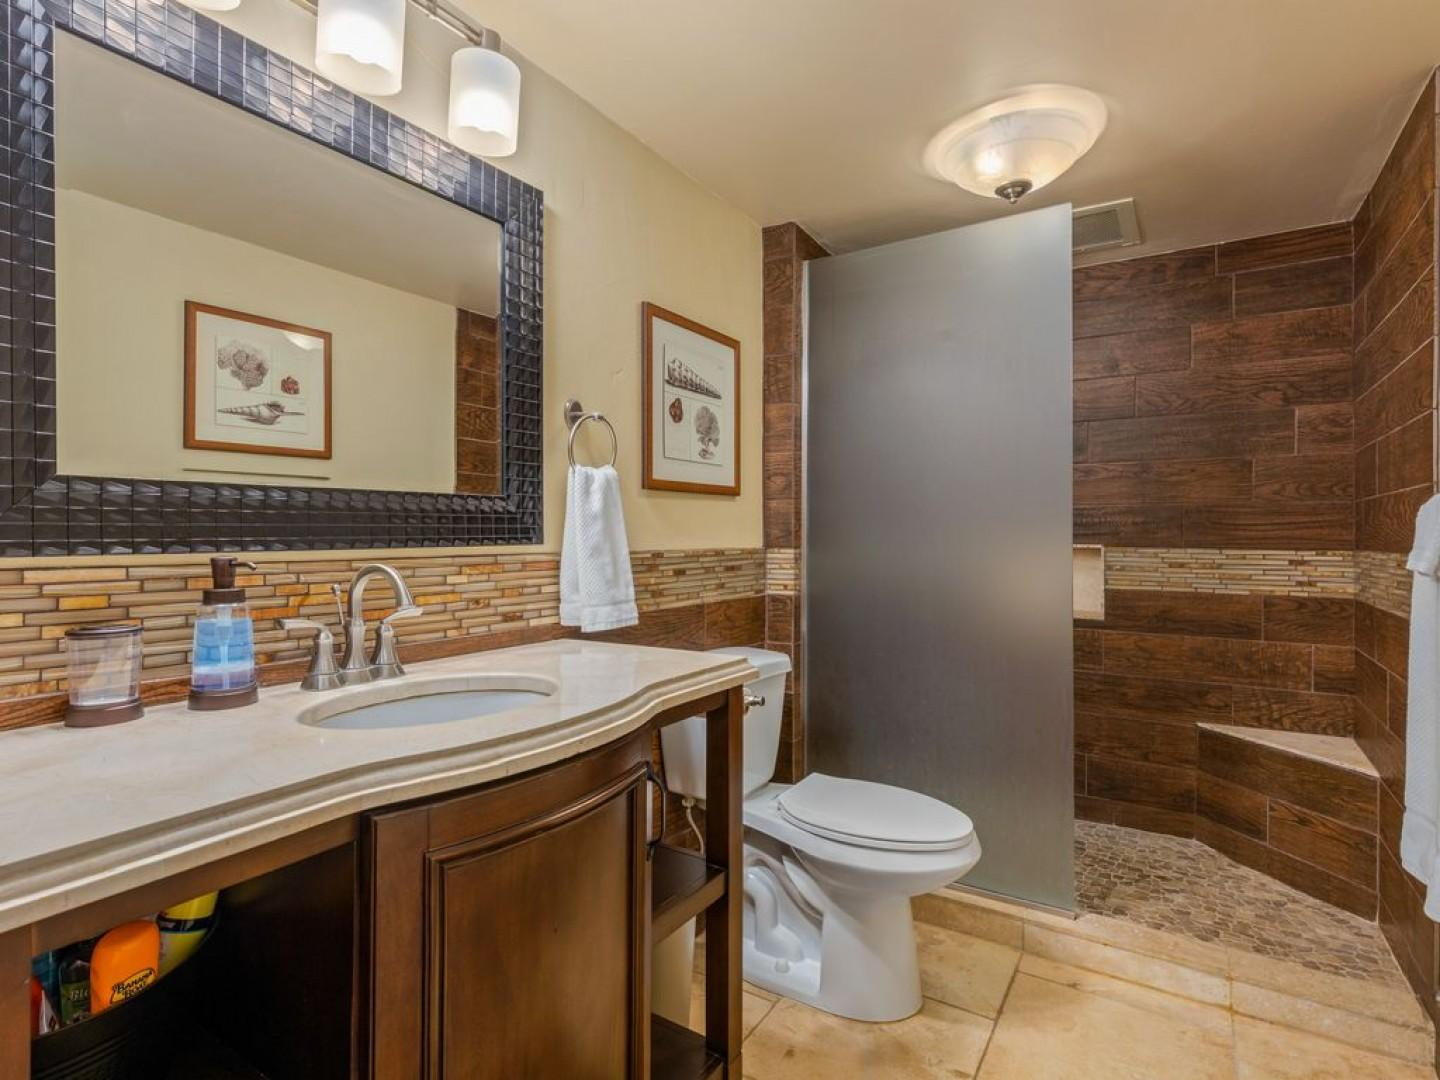 Gorgeously appointed bathroom!